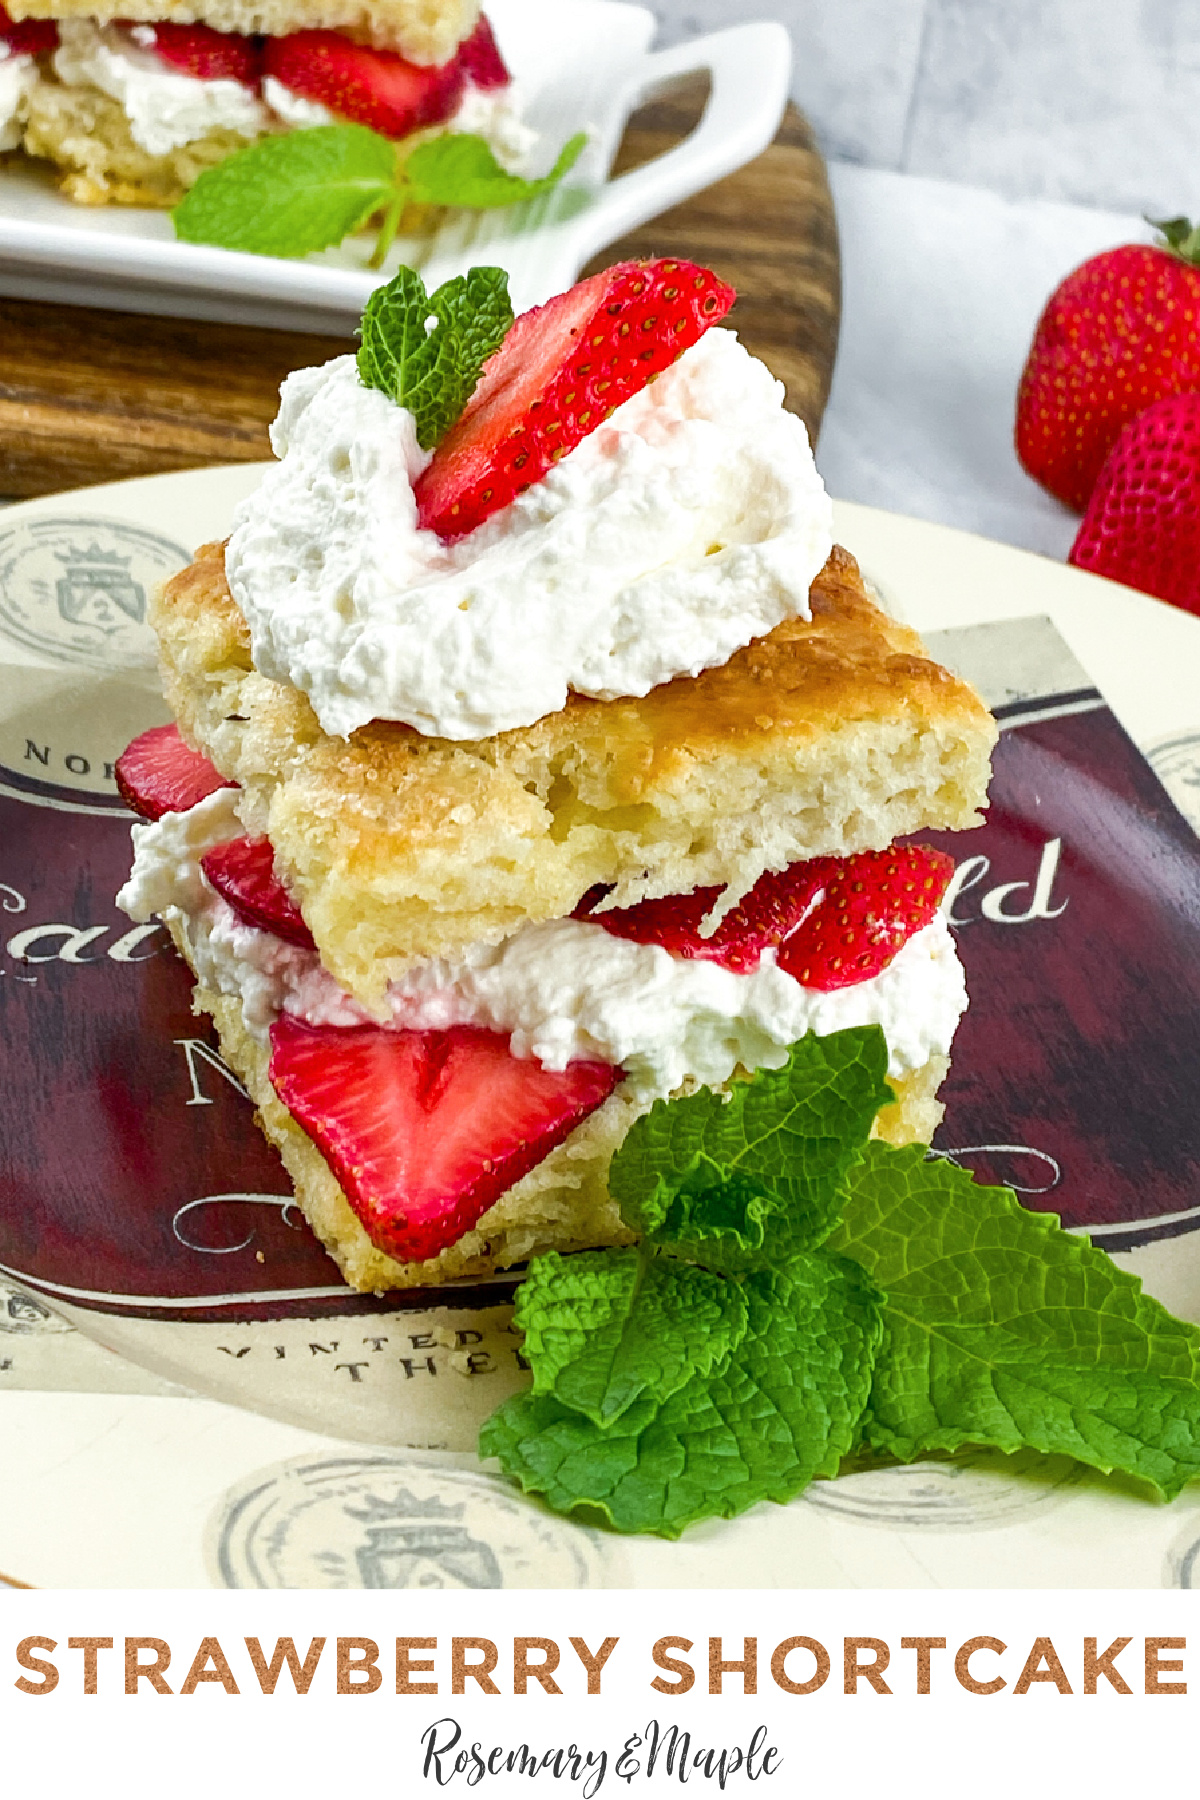 This is a traditional strawberry shortcake recipe made from scratch with fluffy shortcake, fresh macerated strawberries & real whipped cream.